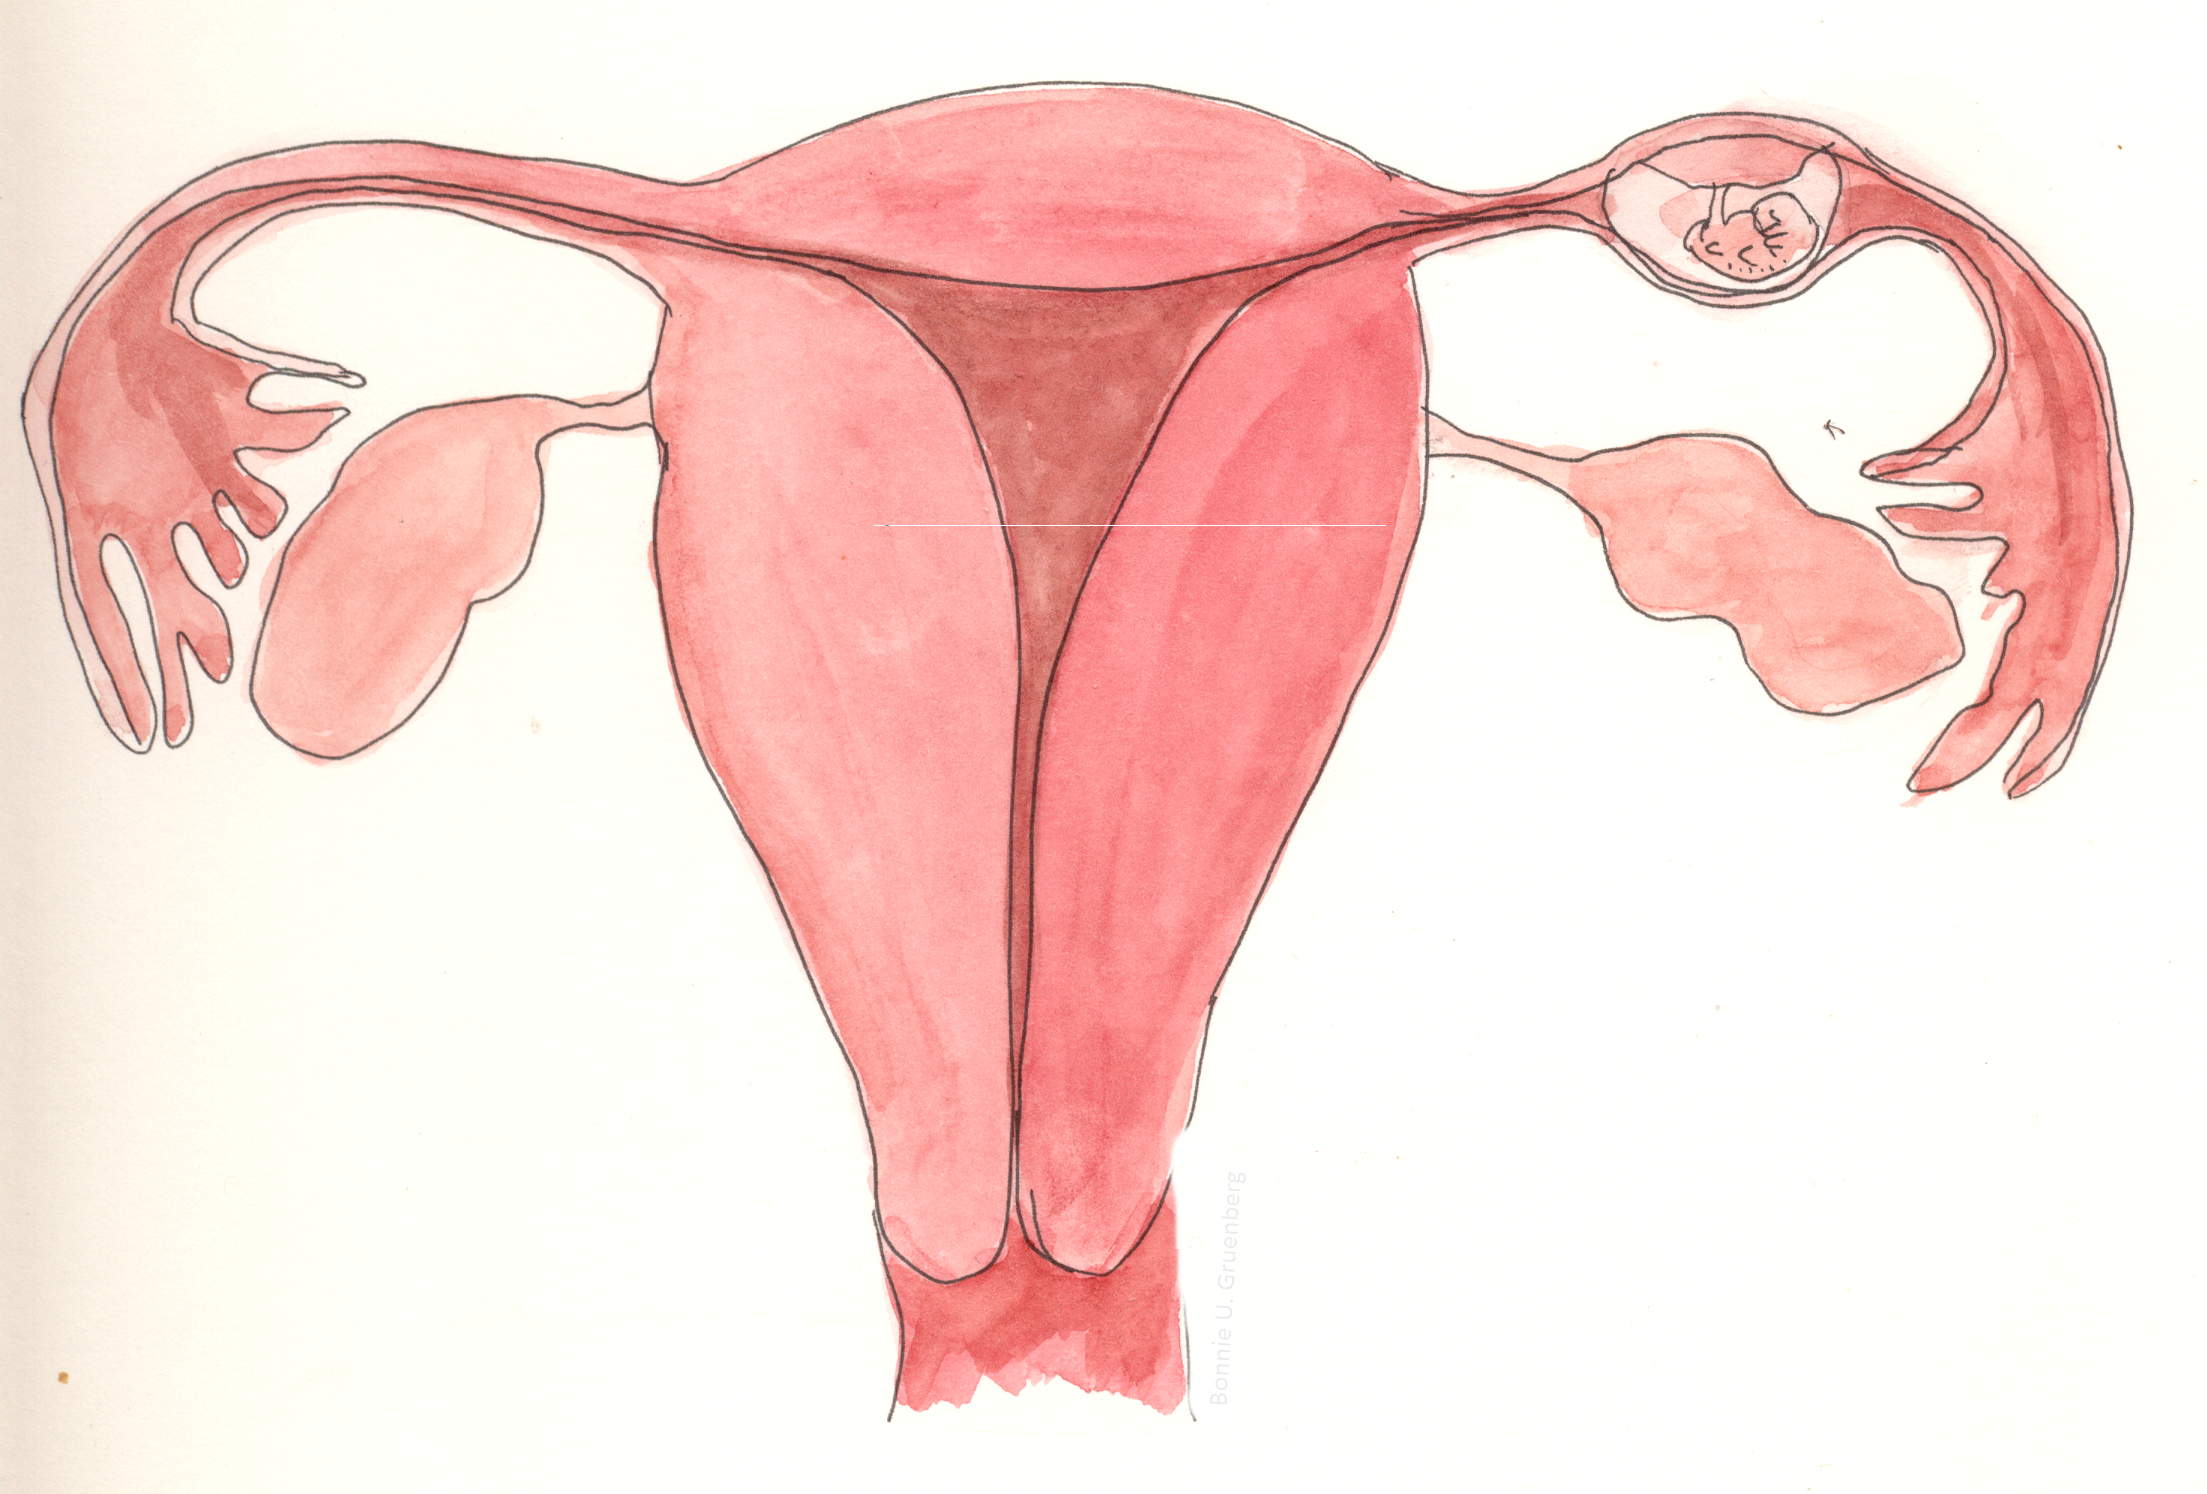 How To Diagnose An Ectopic Pregnancy